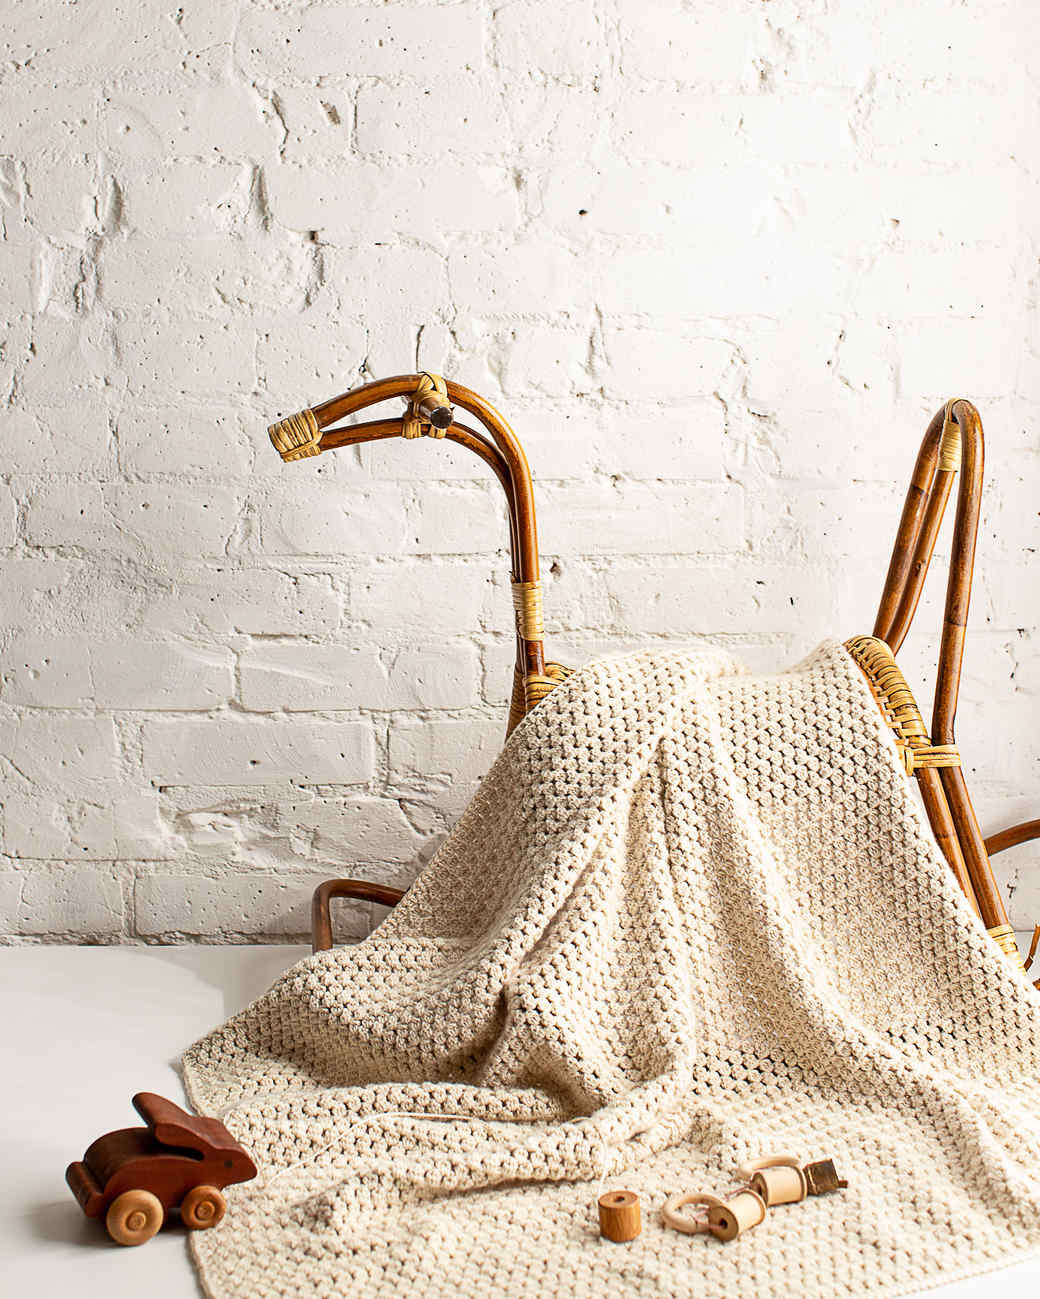 soft bobble crocheted blanket with a stand and toys